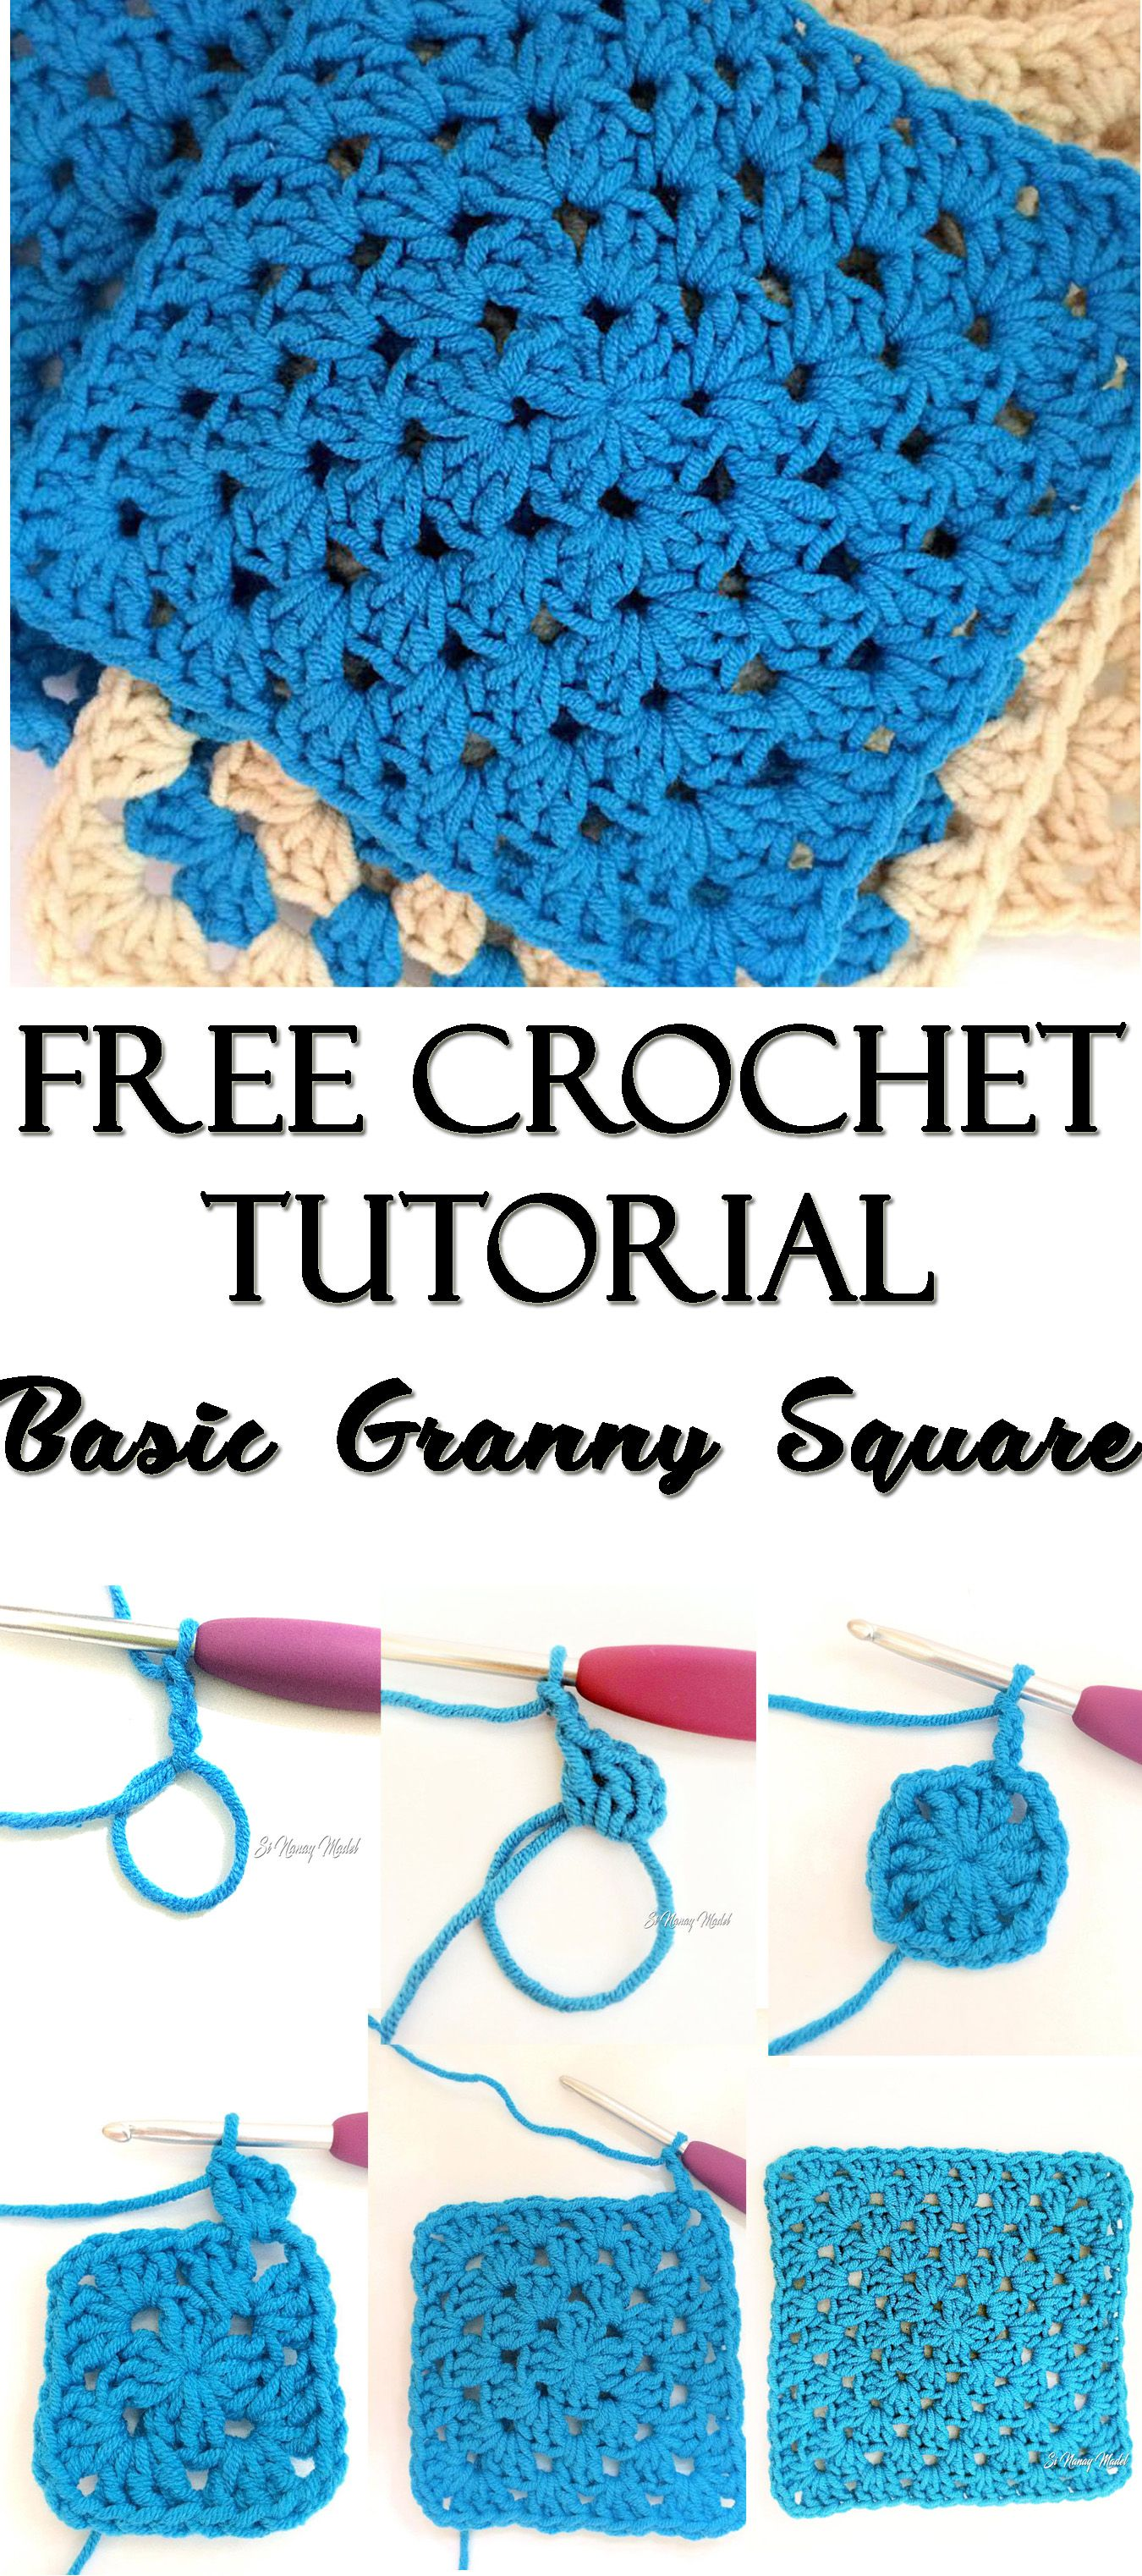 Basic granny square tutorial my hobby is crochet collaboration basic granny square tutorial bankloansurffo Image collections